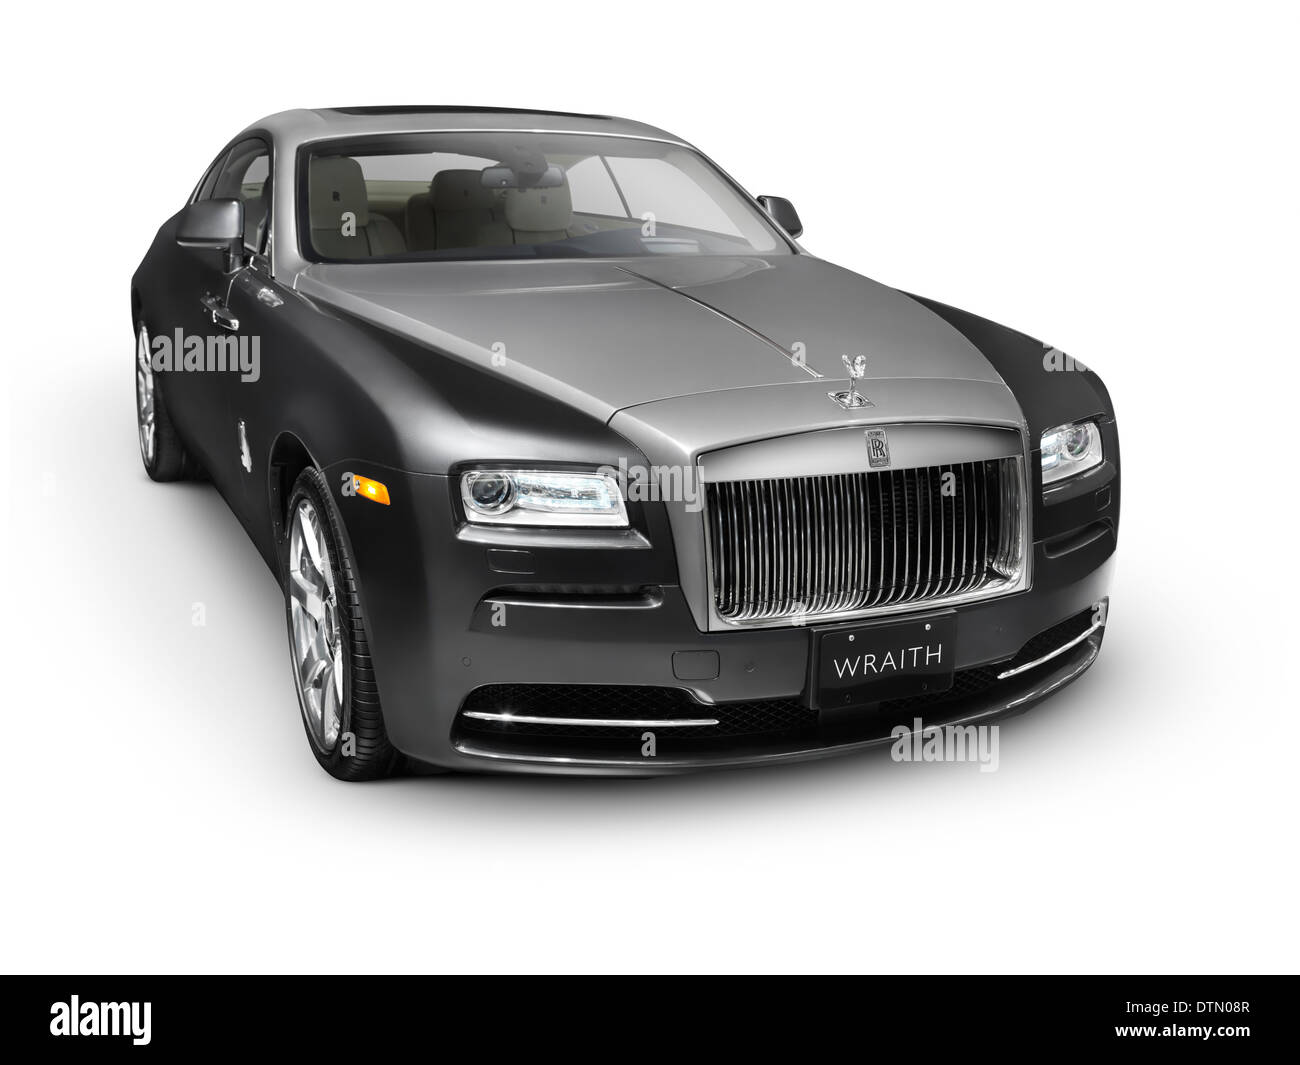 2014 Rolls Royce Wraith British Luxury Car Isolated On White Stock